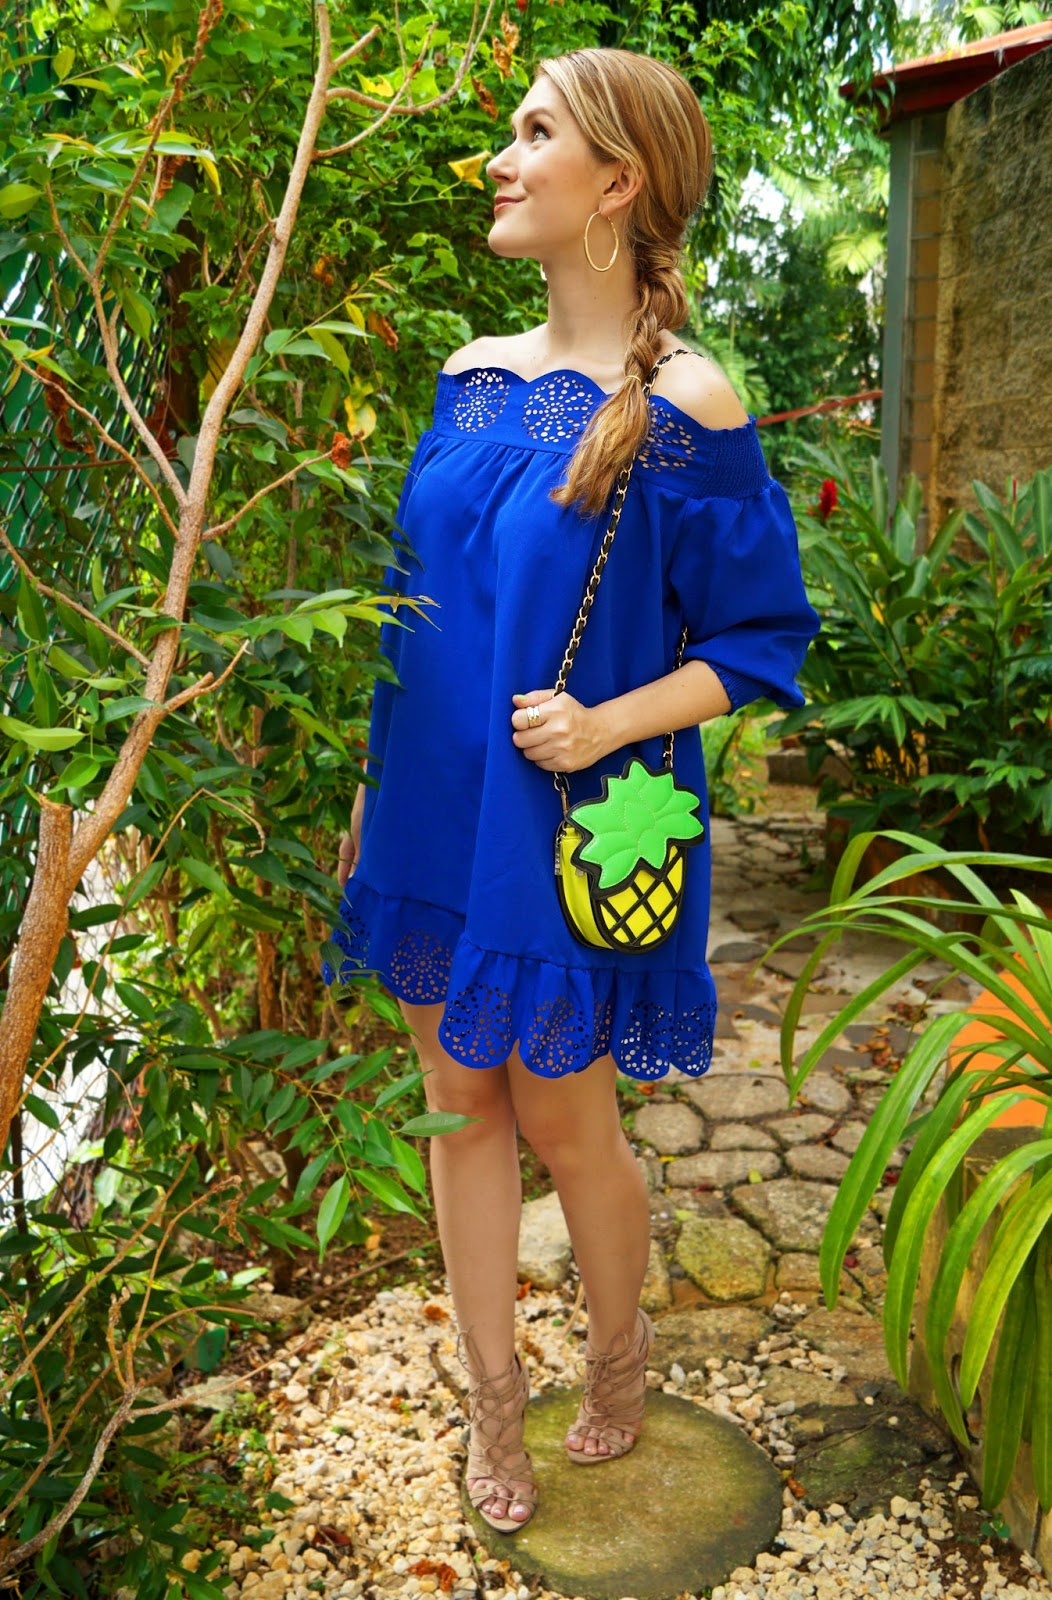 Colorful Summer Outfit. Love the Pineapple bag!